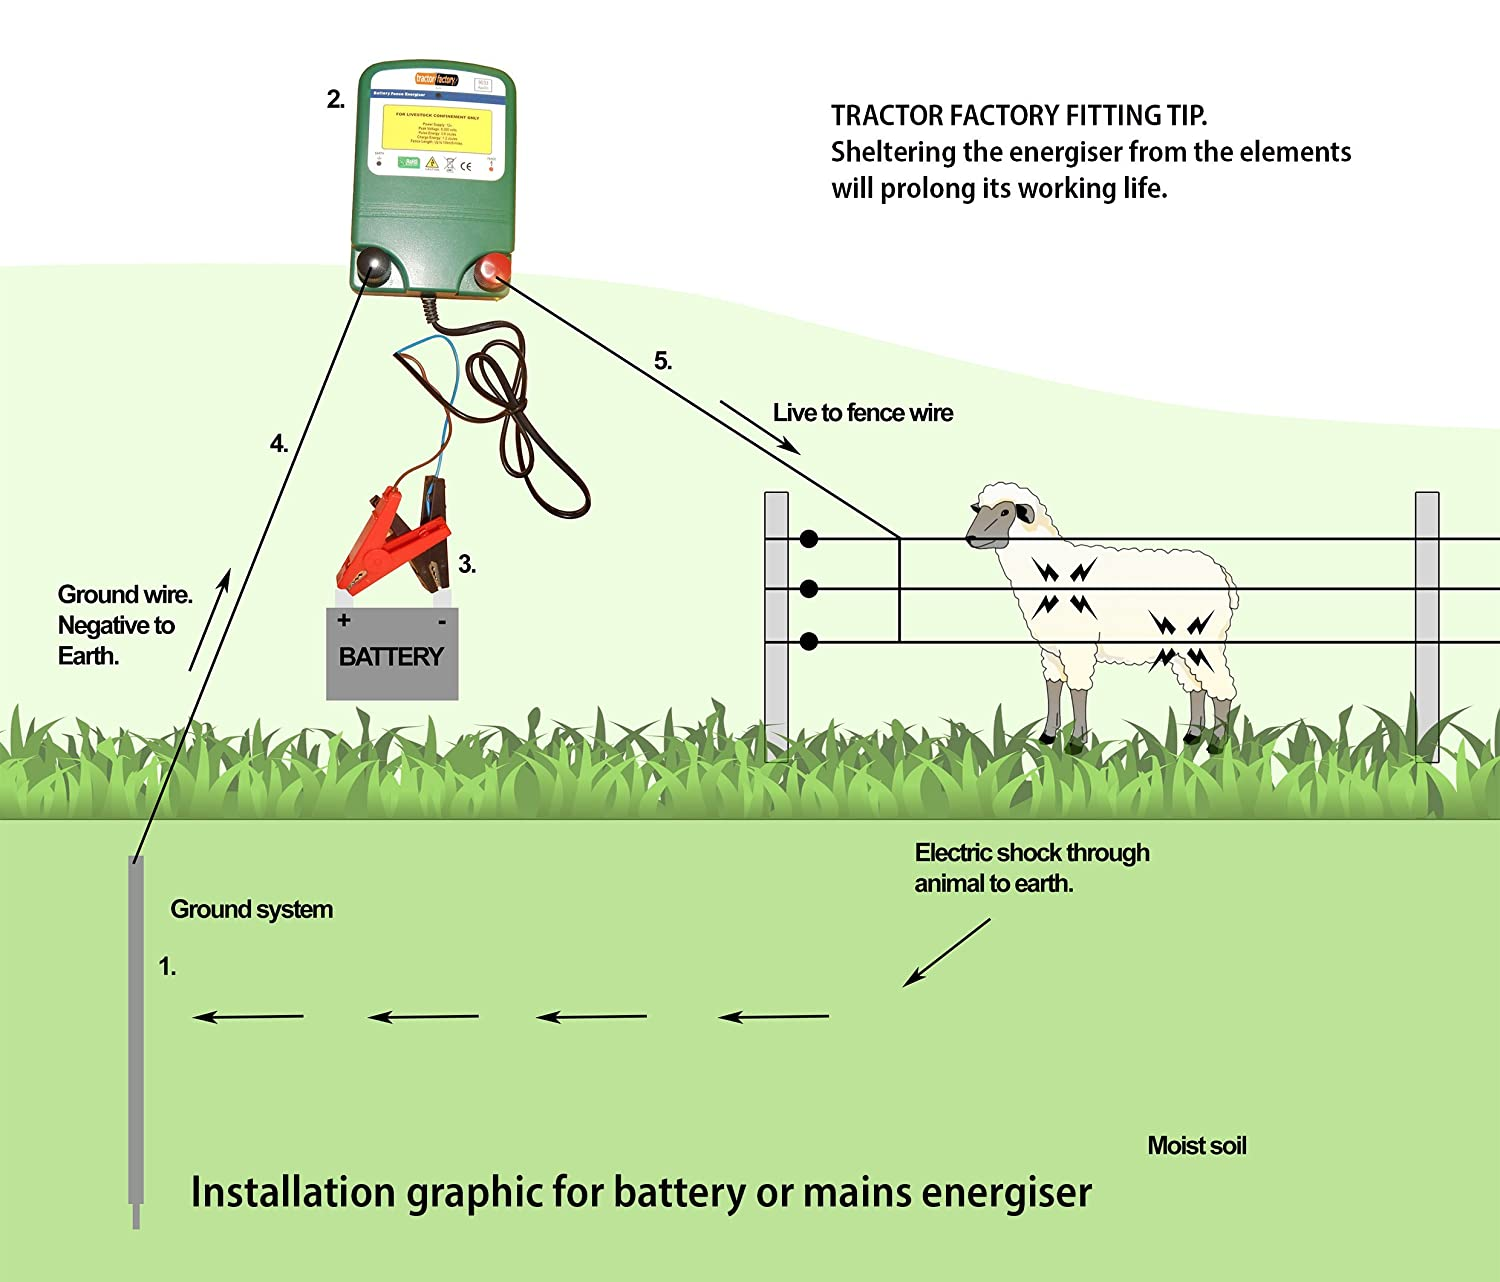 Electric Fence Energiser Shire 06joules 12v Battery Water Proof 6 Fencing Accessories 7 Strand Wire Mile Of Garden Outdoors